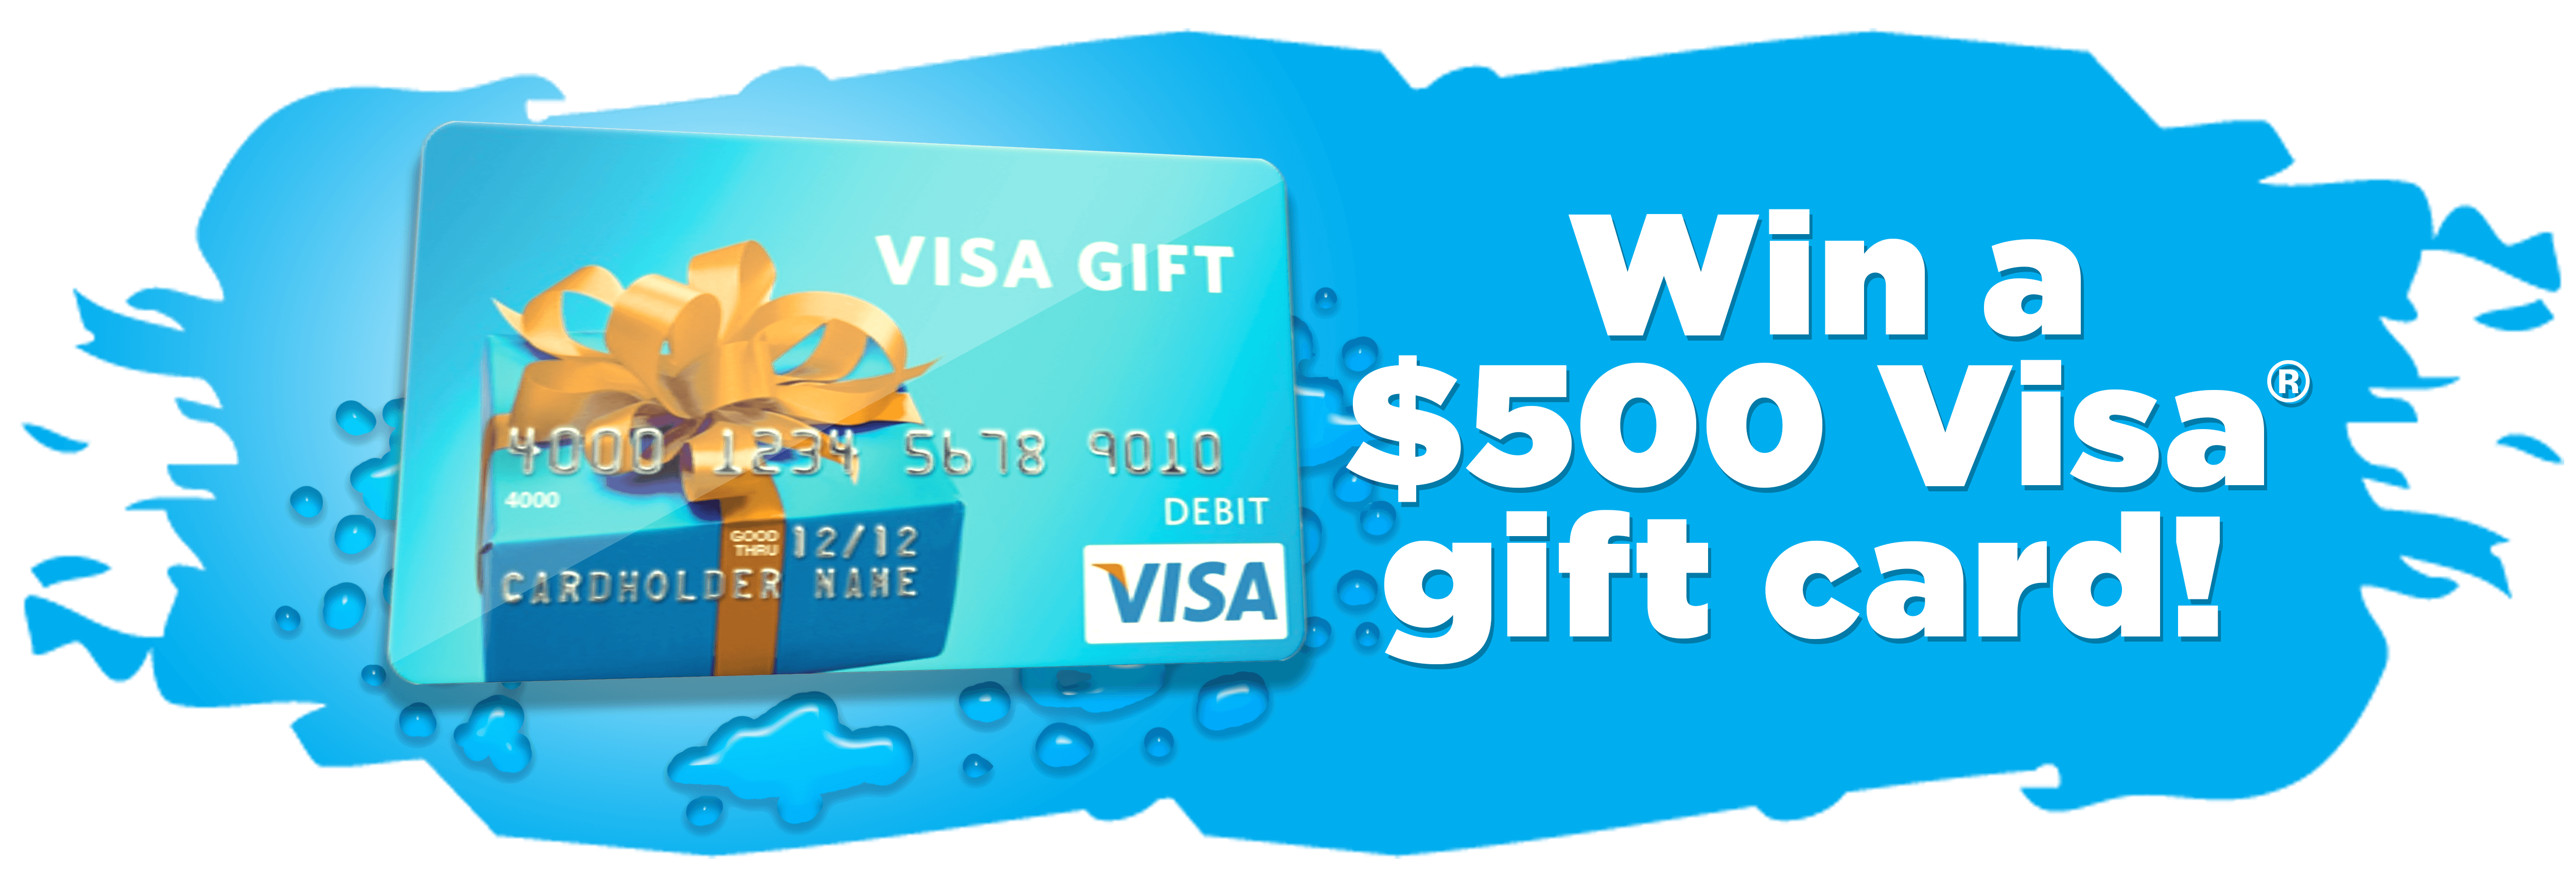 West virgina frogger prizes. Prize clipart gift card